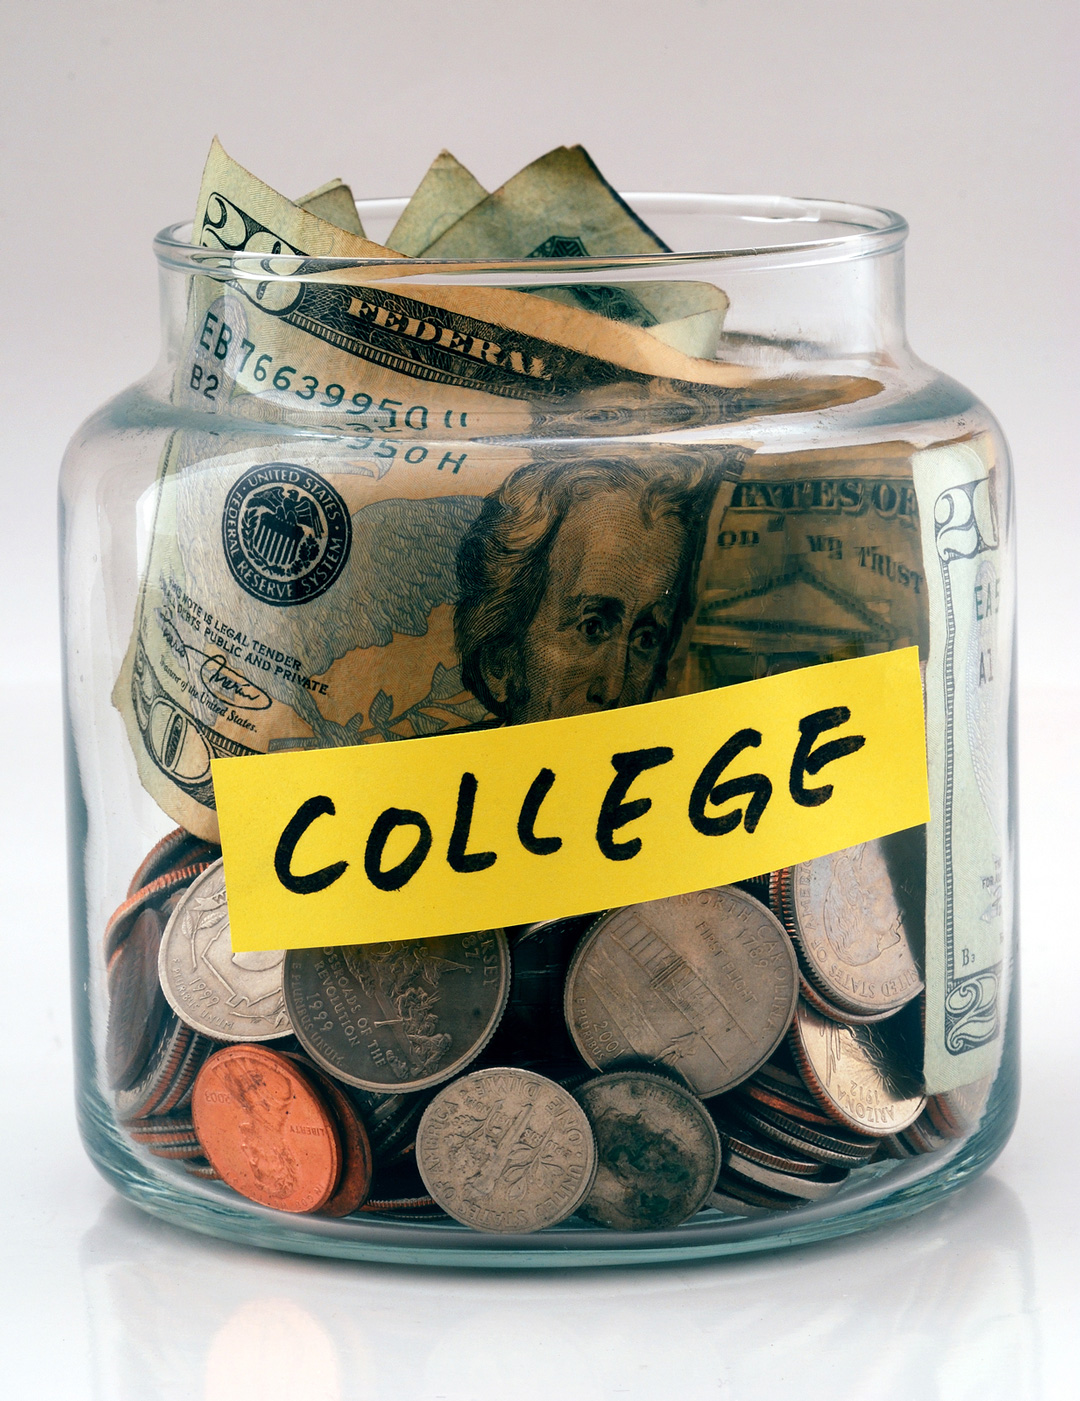 Need advice before starting MBA Finance program/ havent been to college in 14 years?